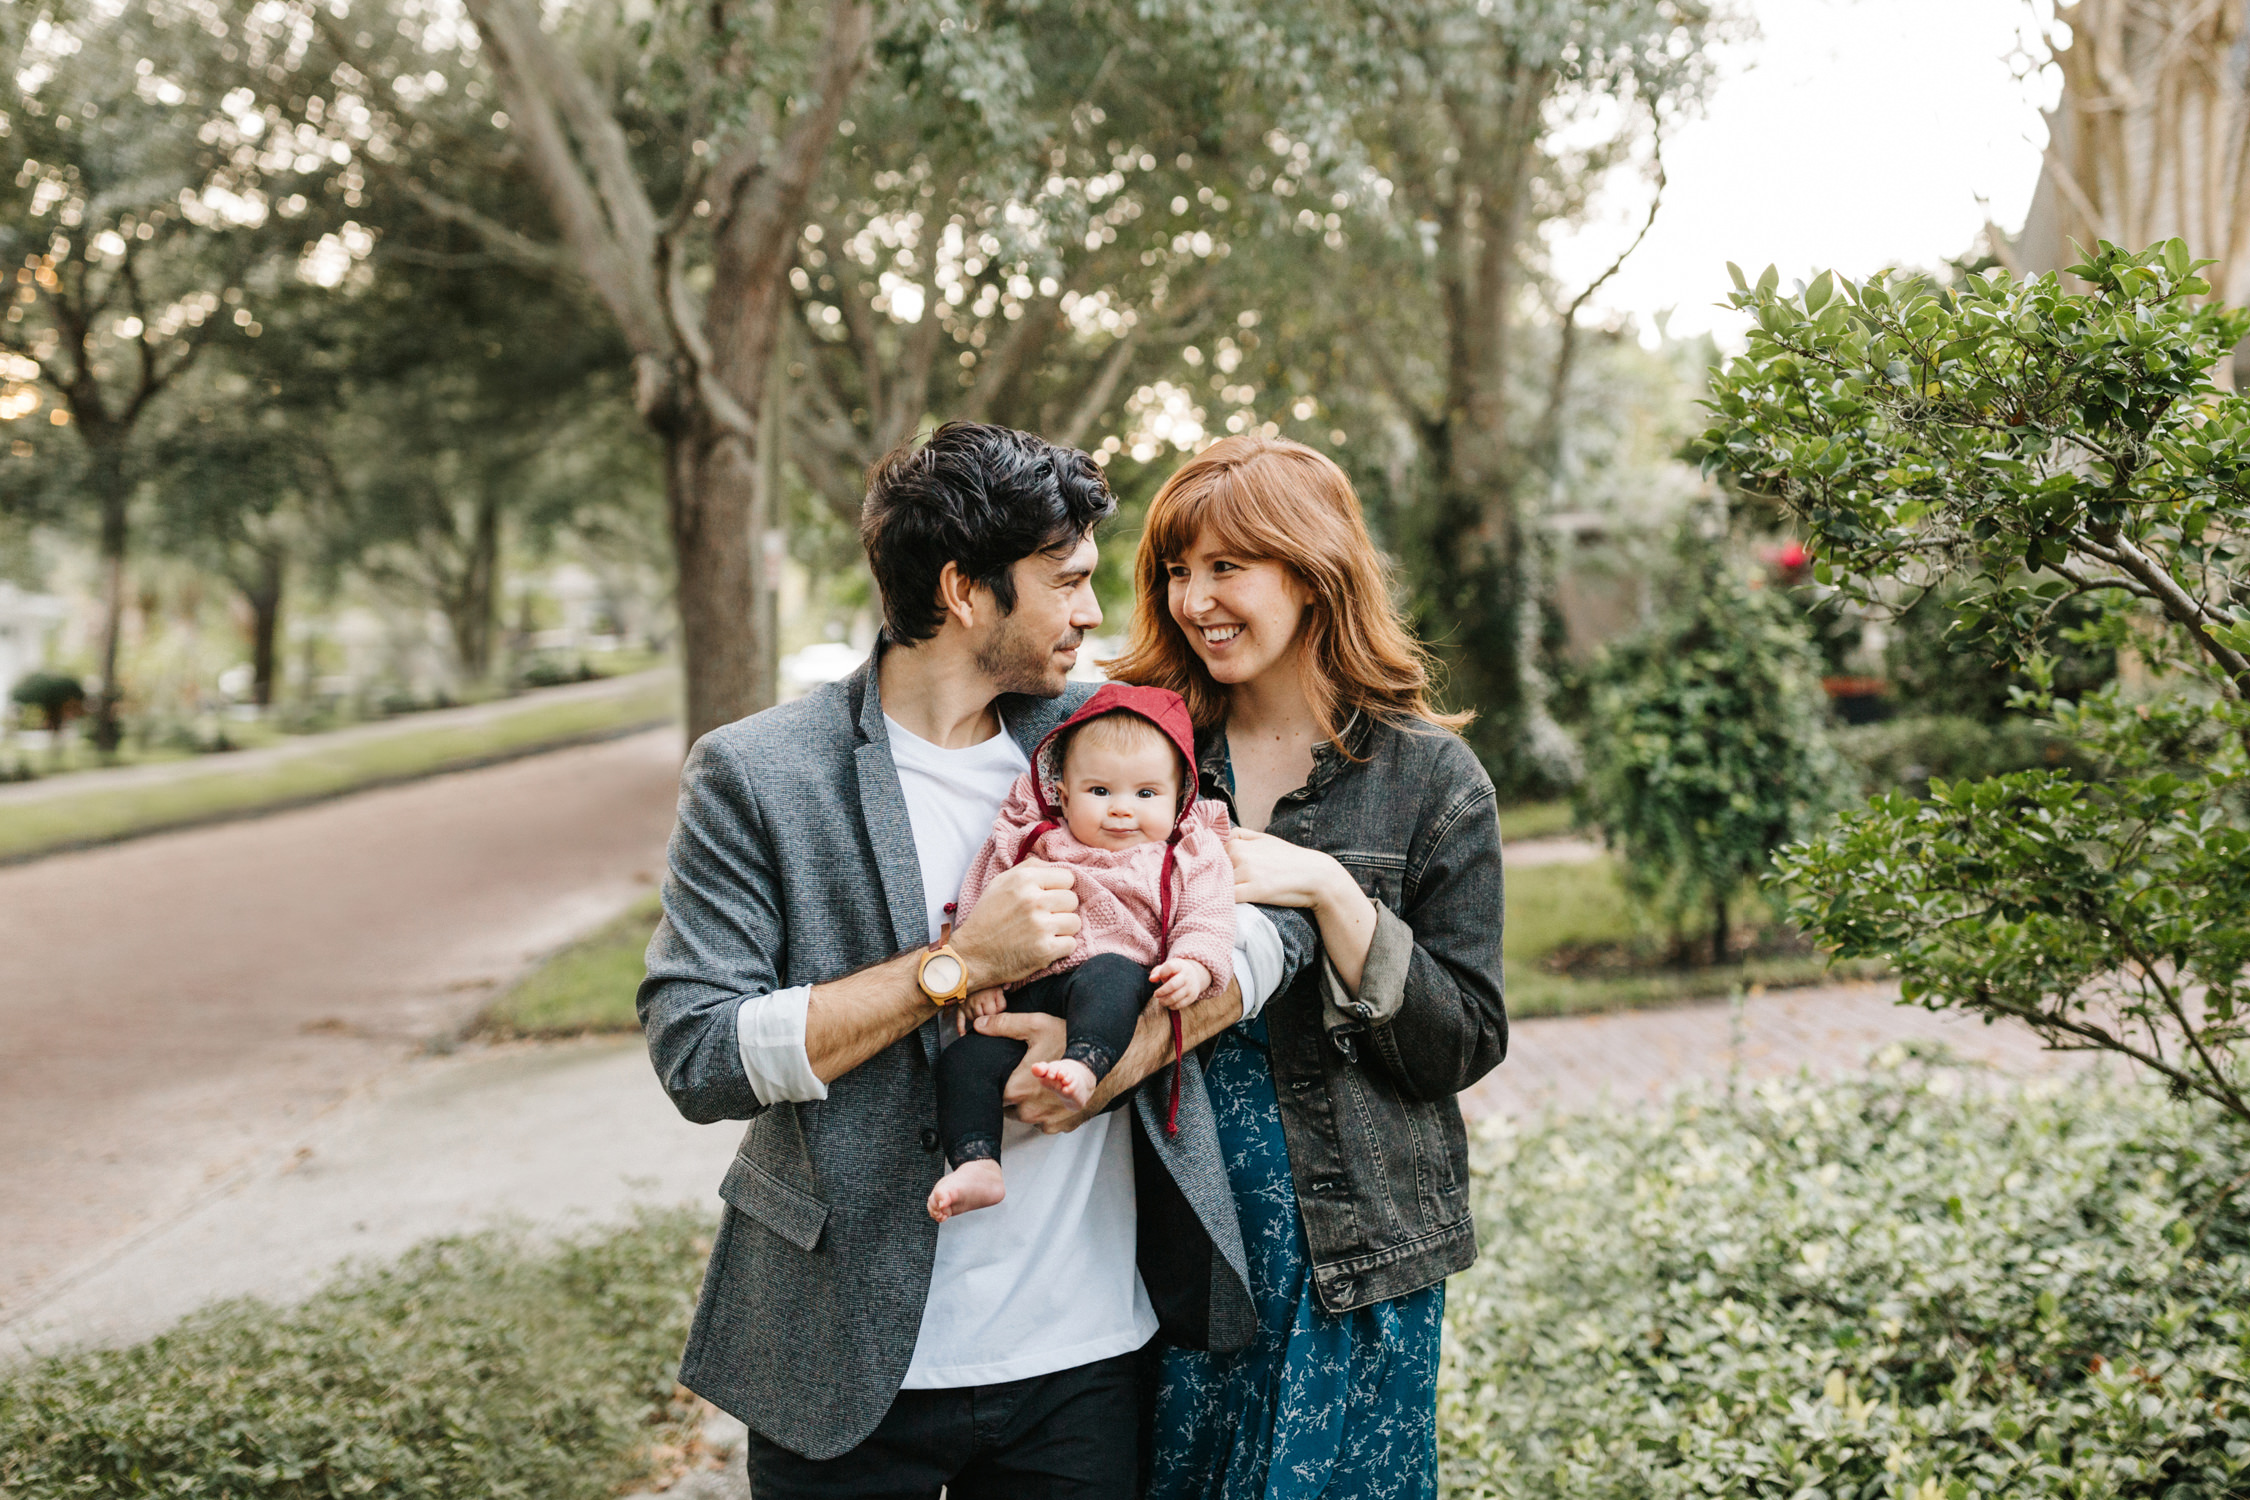 tampa-family-lifestyle-photographer-candid-natural-33